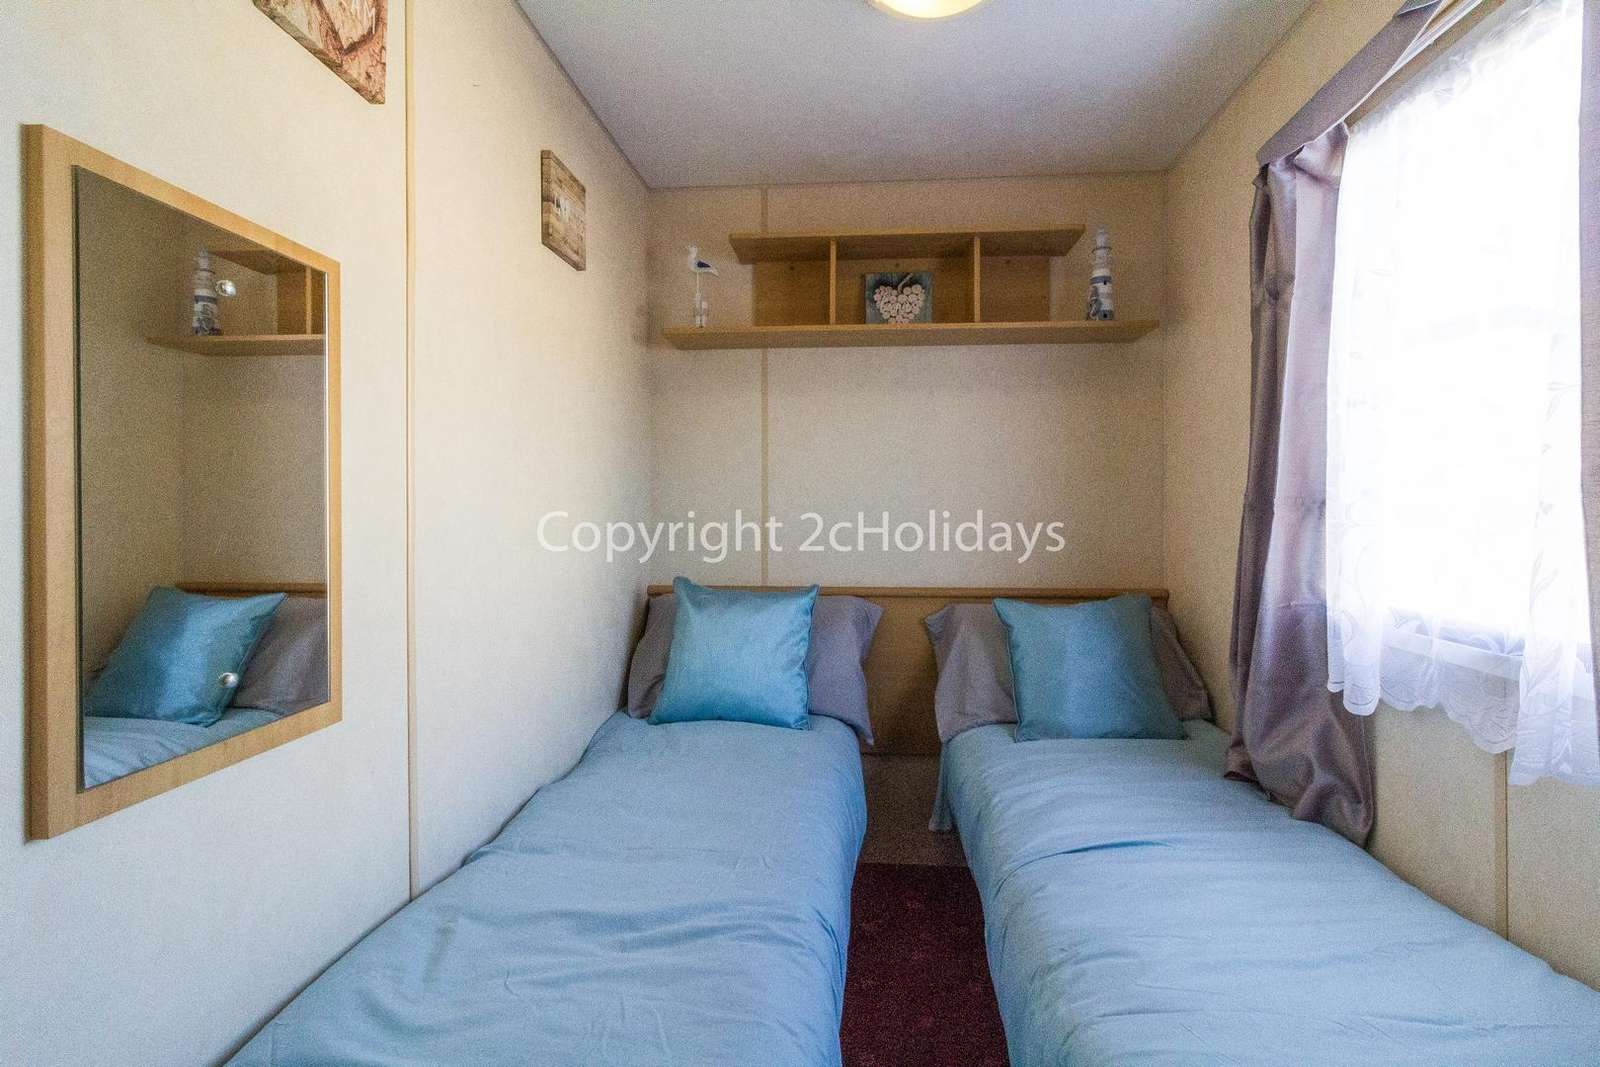 Affordable holidays in Essex with 2cHolidays